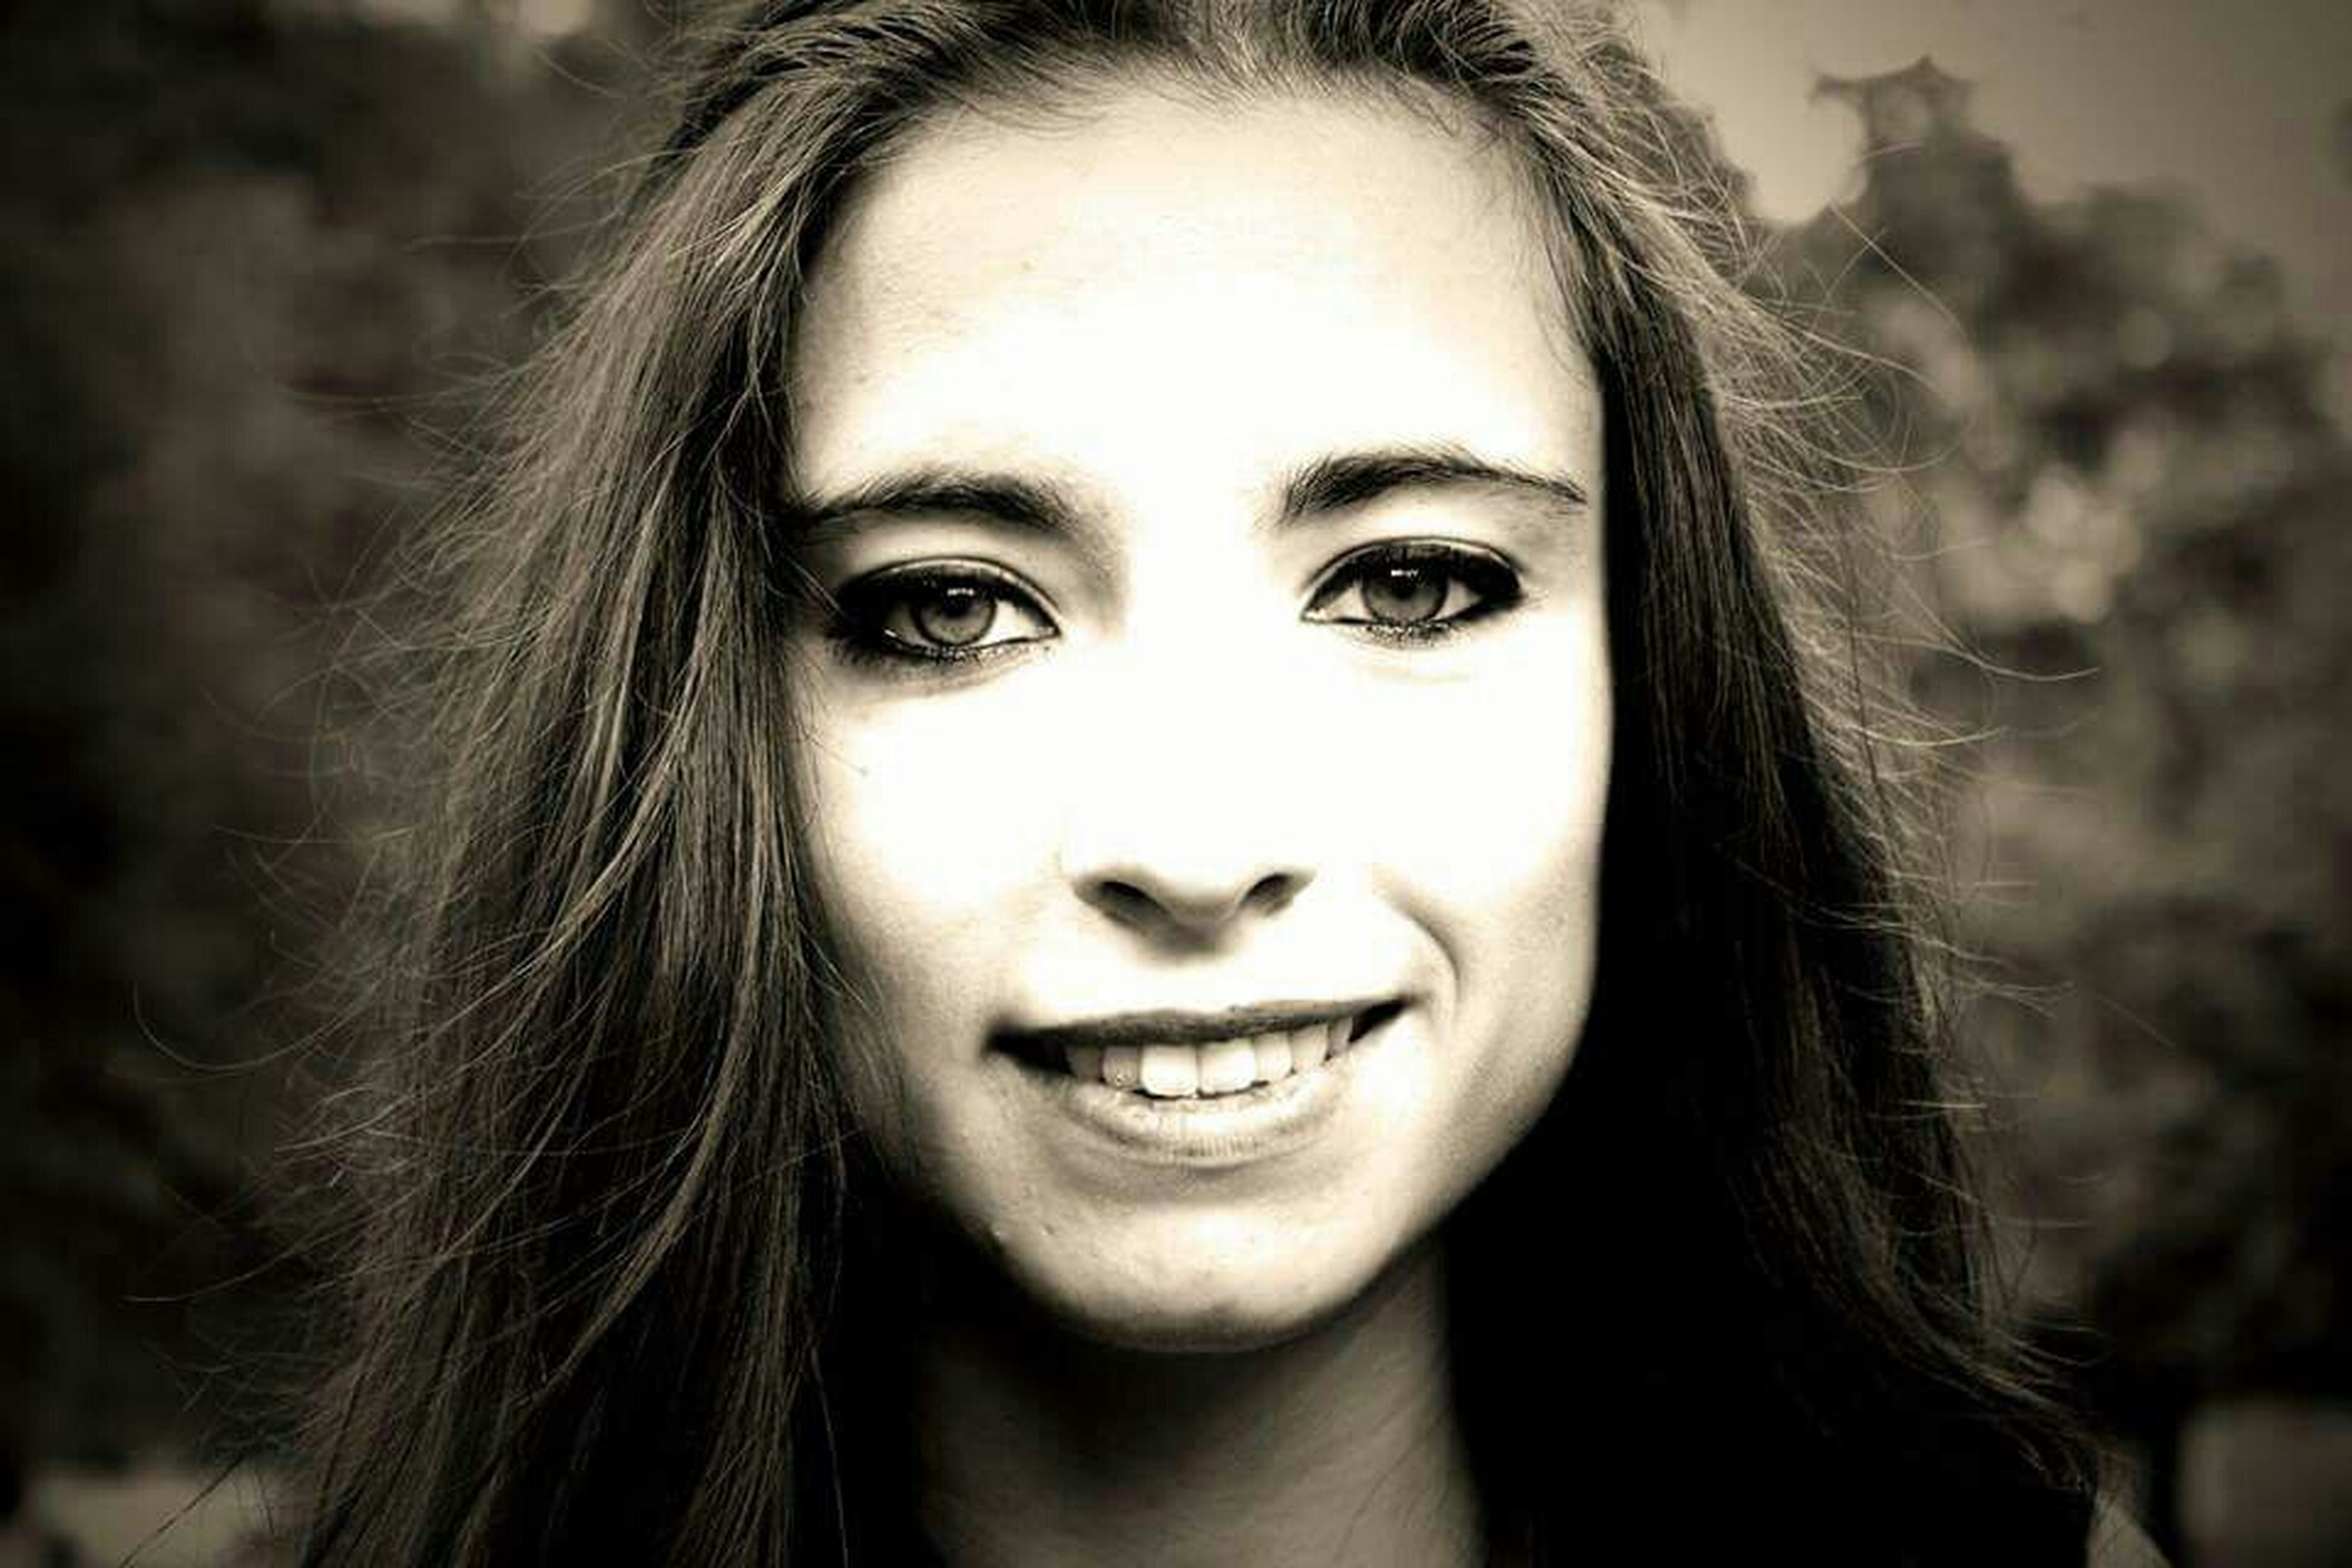 headshot, young adult, looking at camera, portrait, person, young women, long hair, close-up, lifestyles, front view, human face, focus on foreground, leisure activity, smiling, beauty, contemplation, head and shoulders